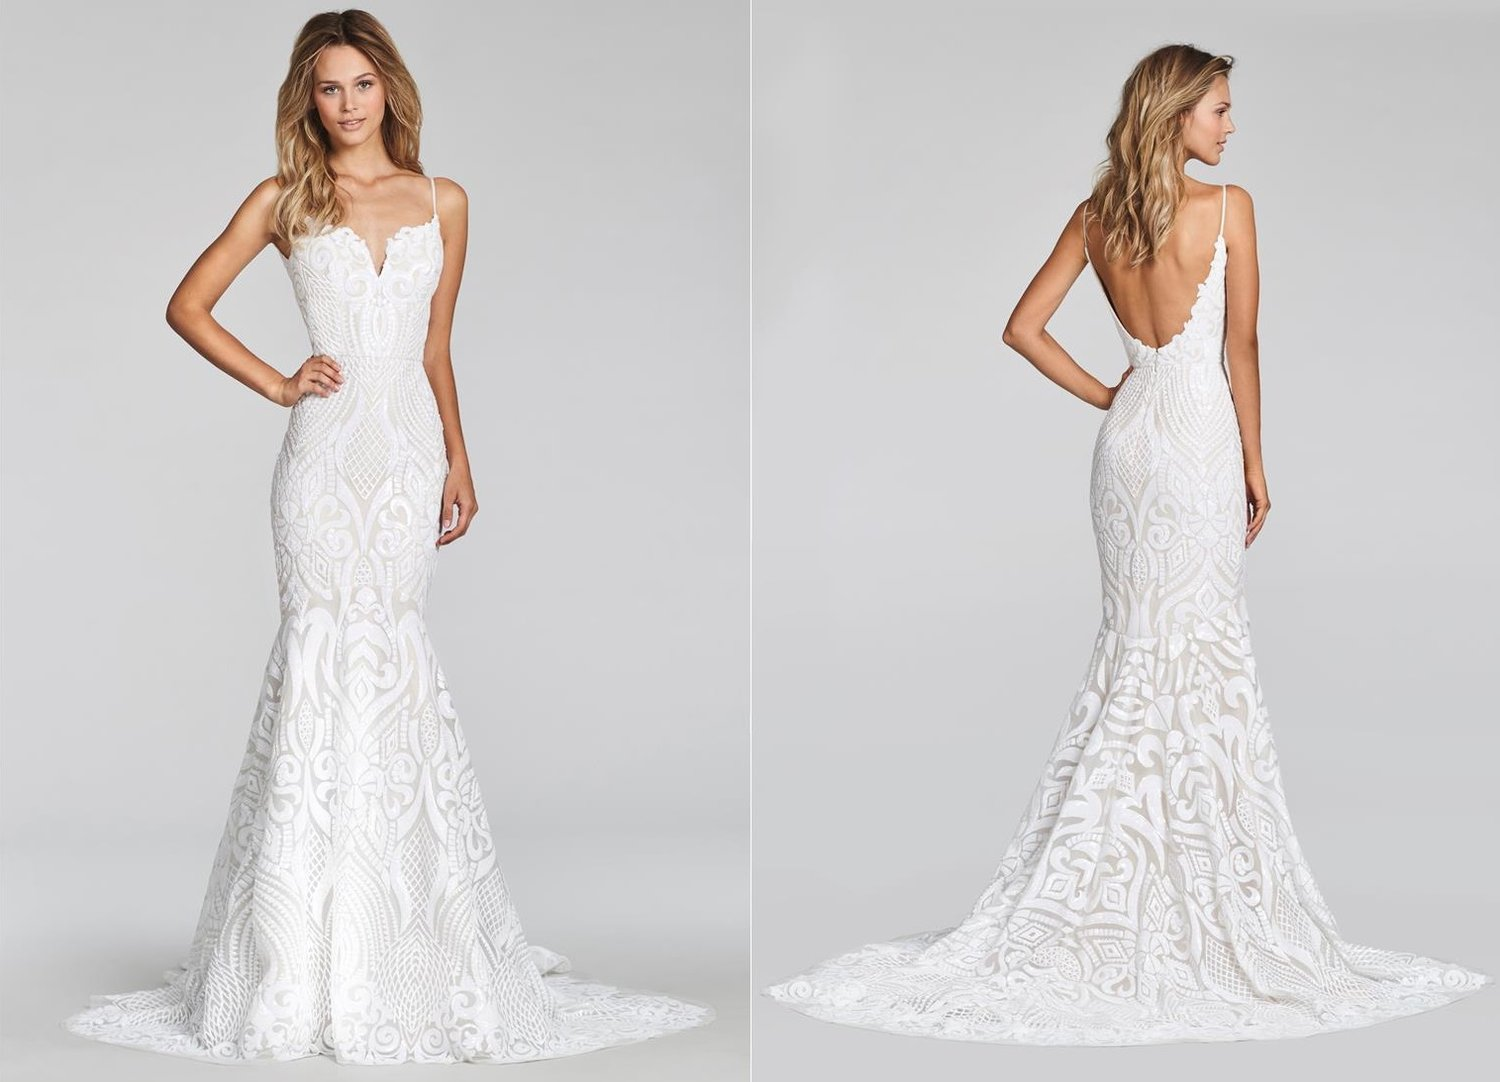 Hayley paige styles gowns for the ultimate revenge body for Hayley paige wedding dresses cost